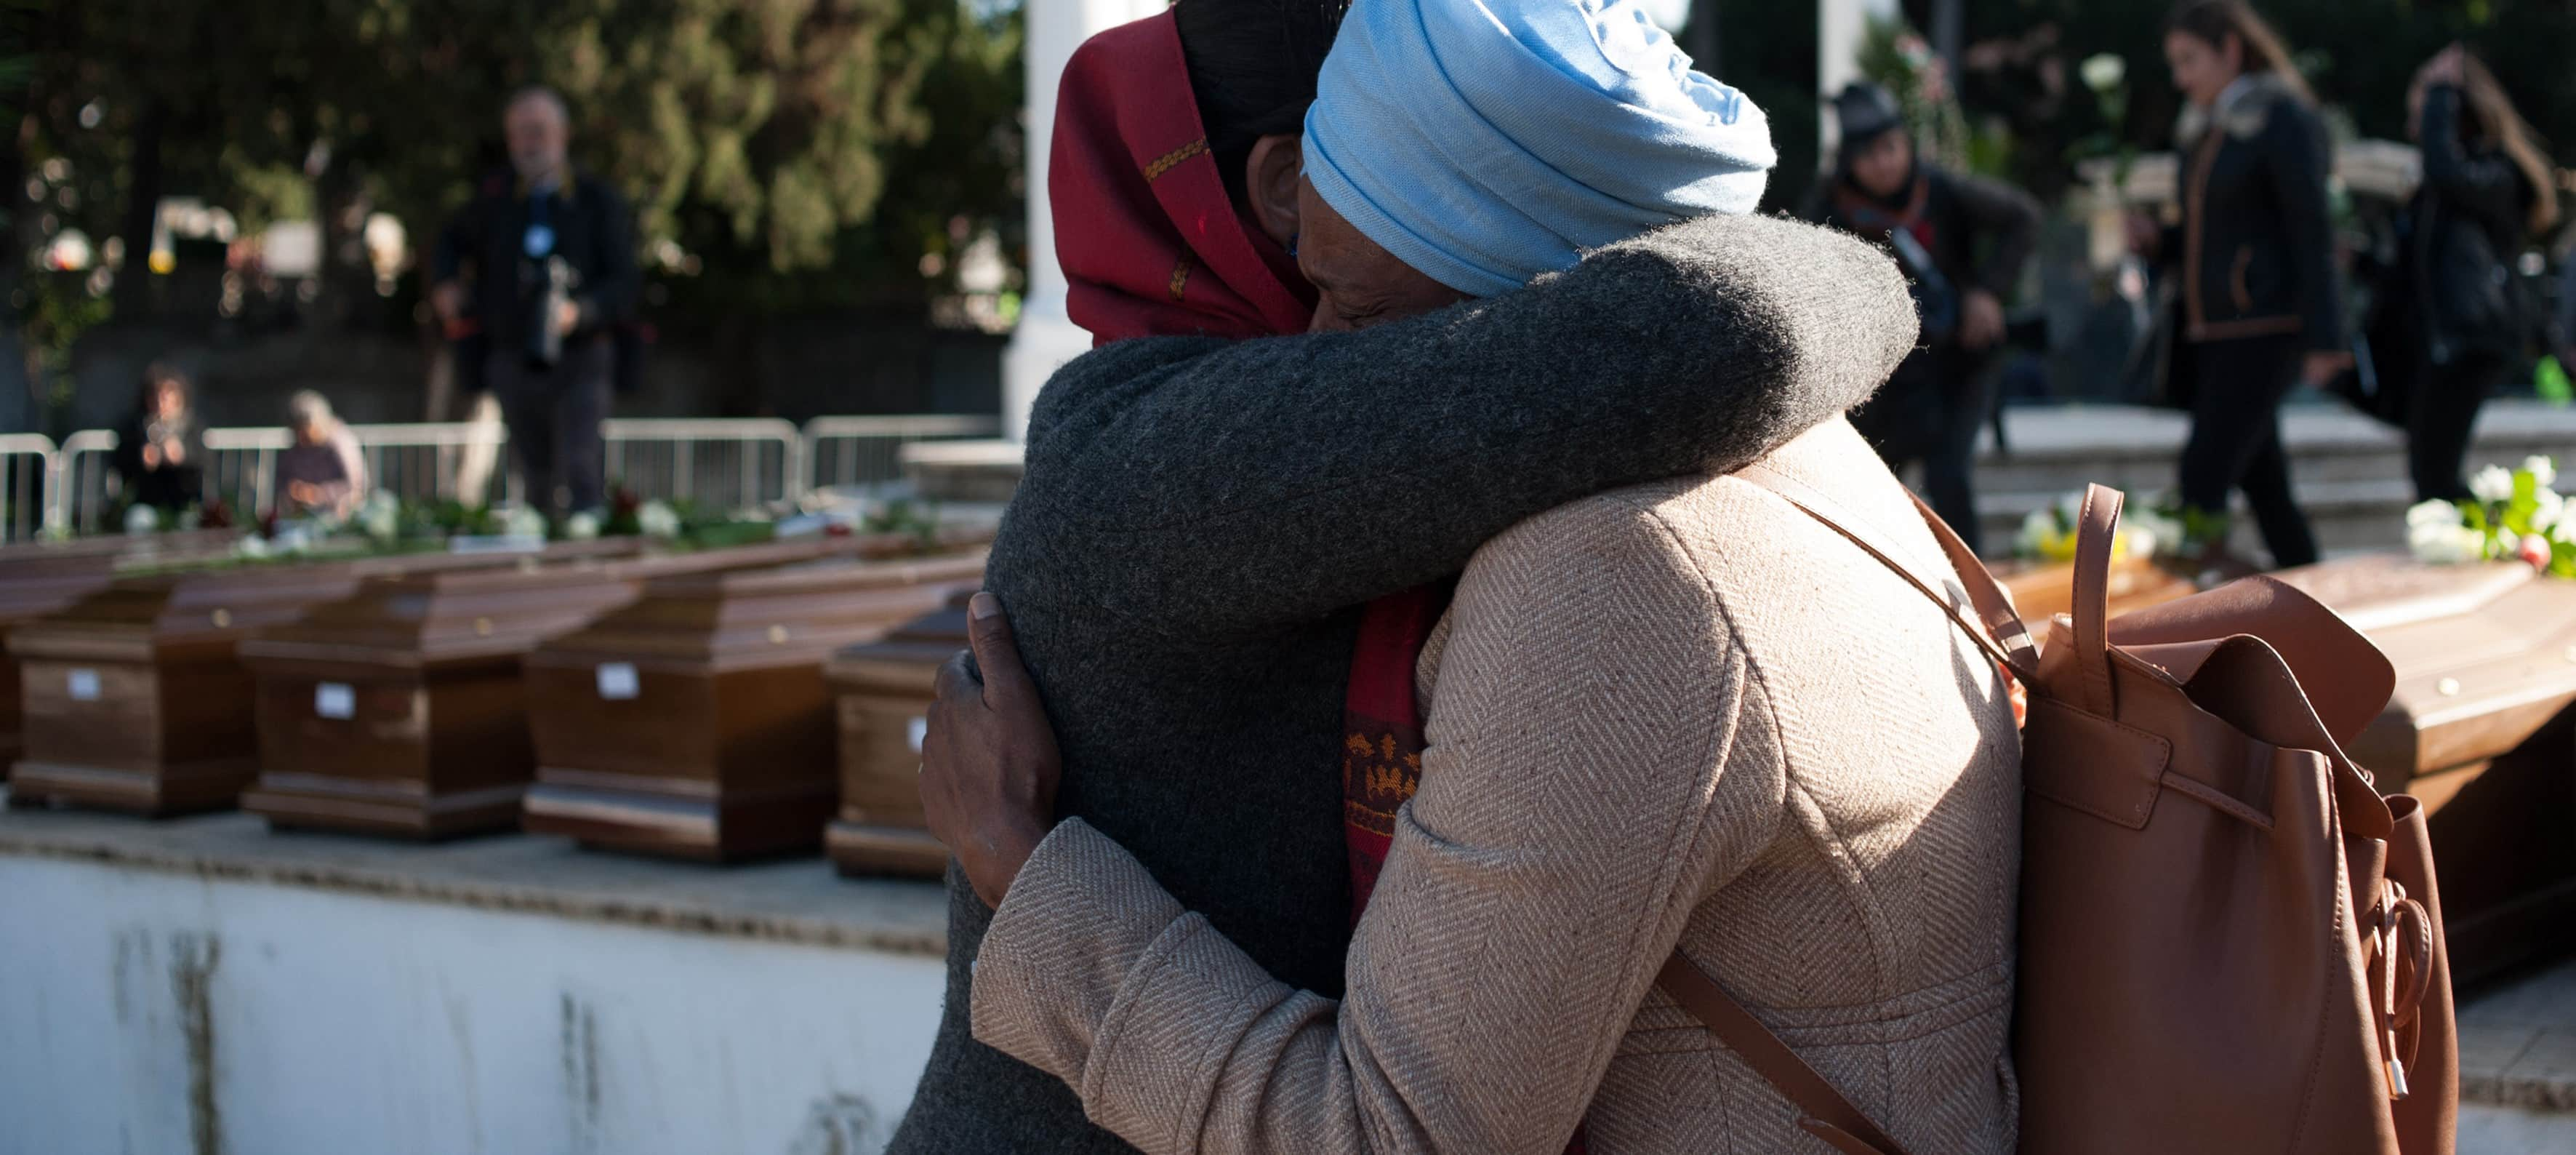 A funeral for 26 migrant women and girls who drowned attempting to cross the Mediterranean, November 2017 (Photo: Ivan Romano/Getty Images)